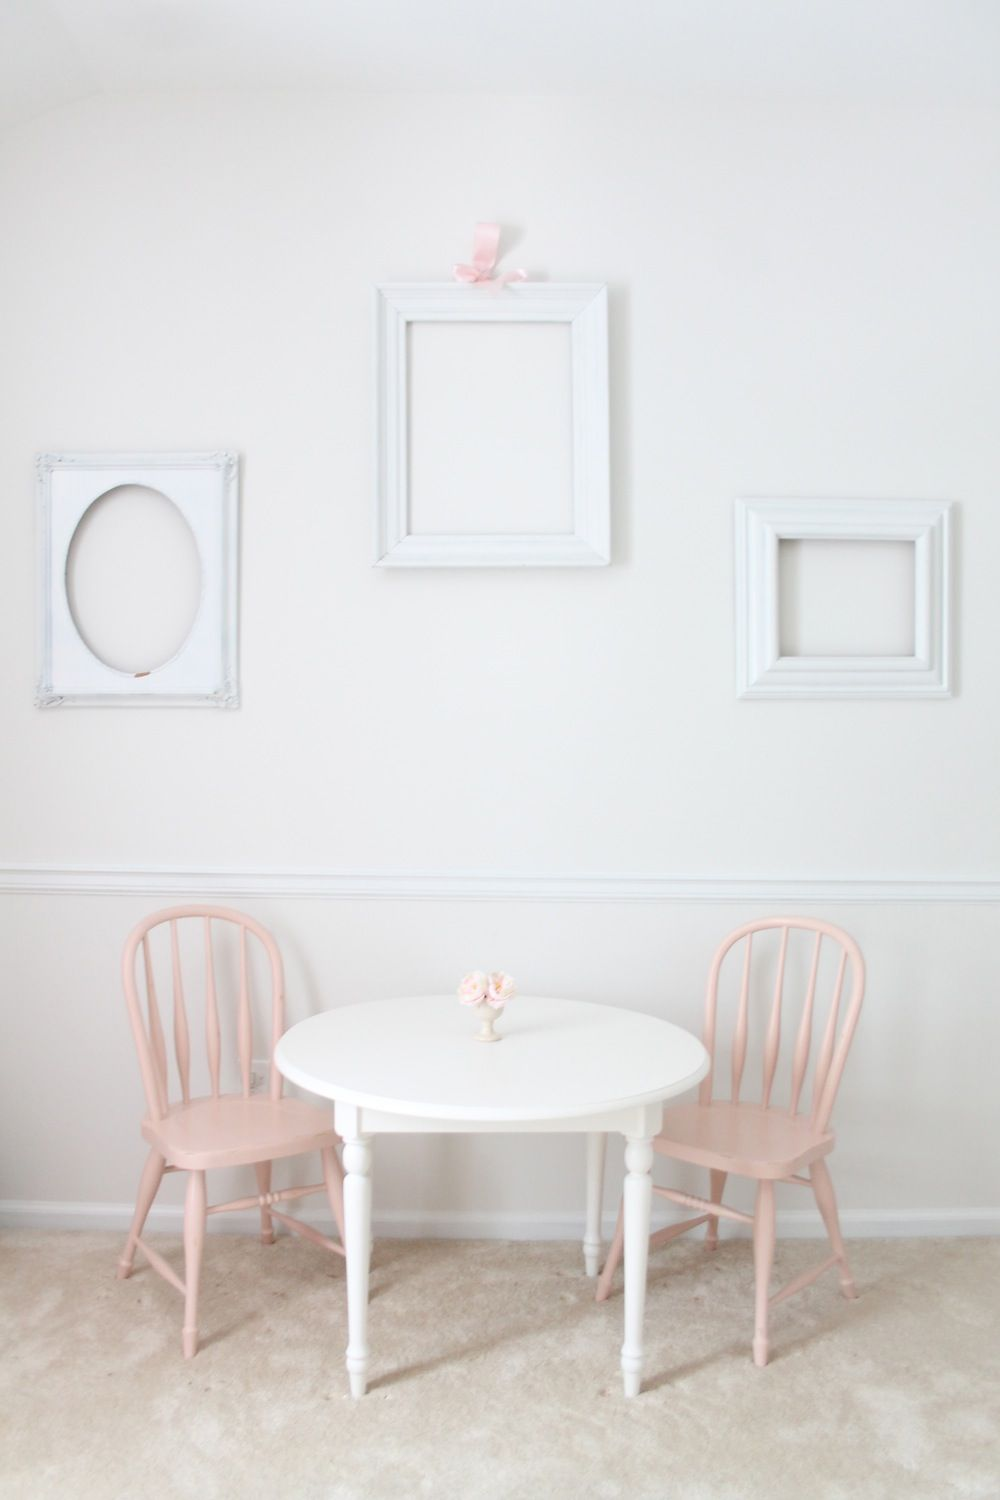 Pottery barn kids table. Color inspiration.